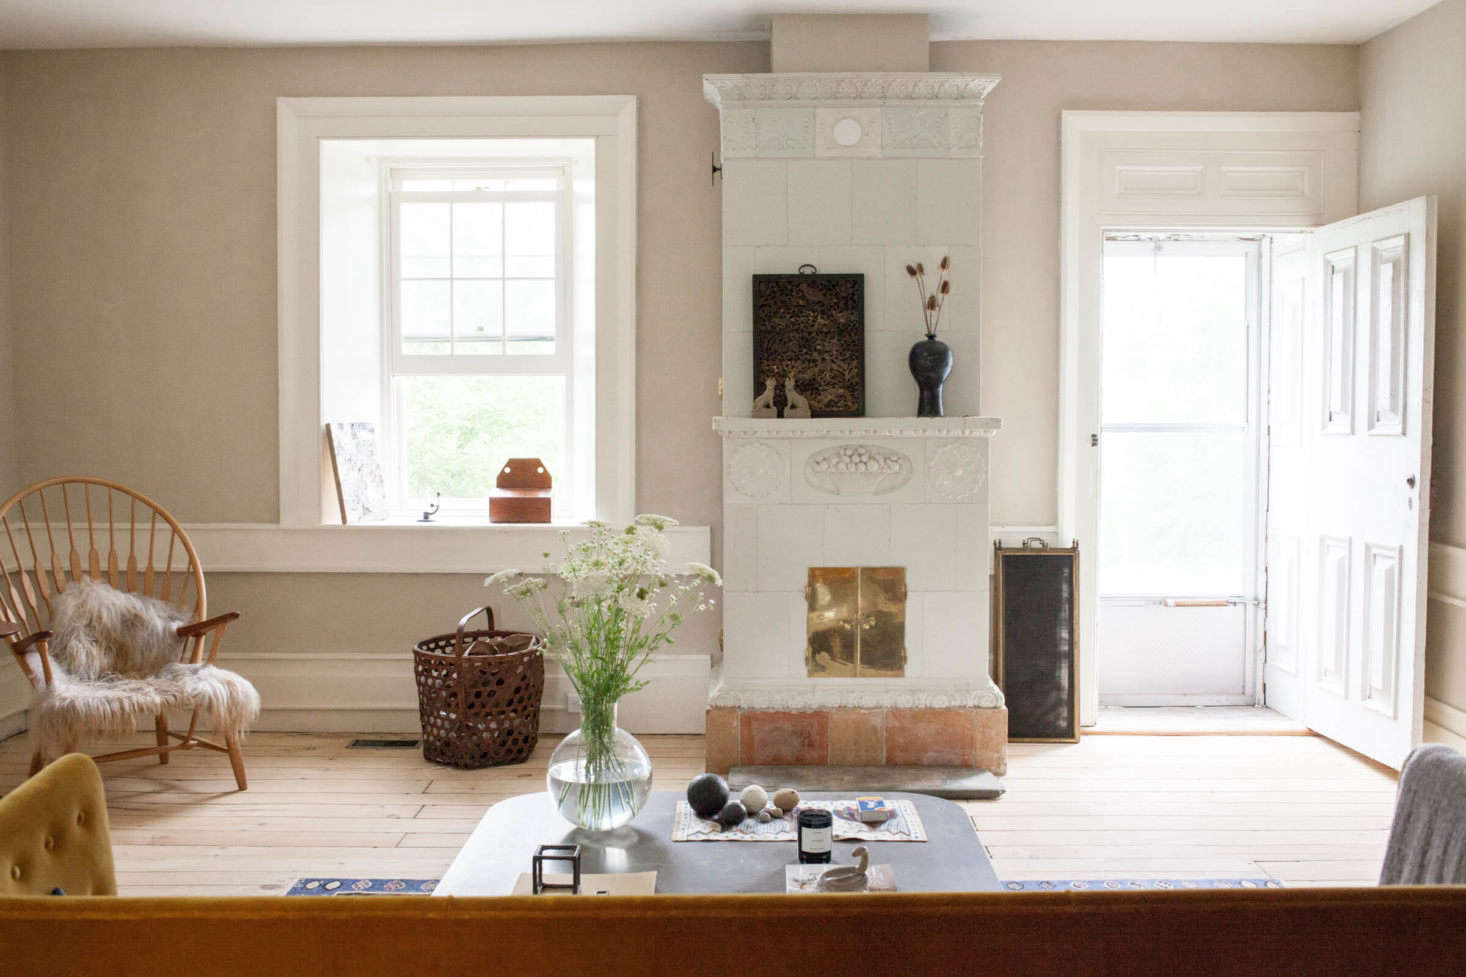 Revisiting a favorite rustic winter project: An Antique Stone House Revived, from John and Juli Baker of Mjolk in Toronto.